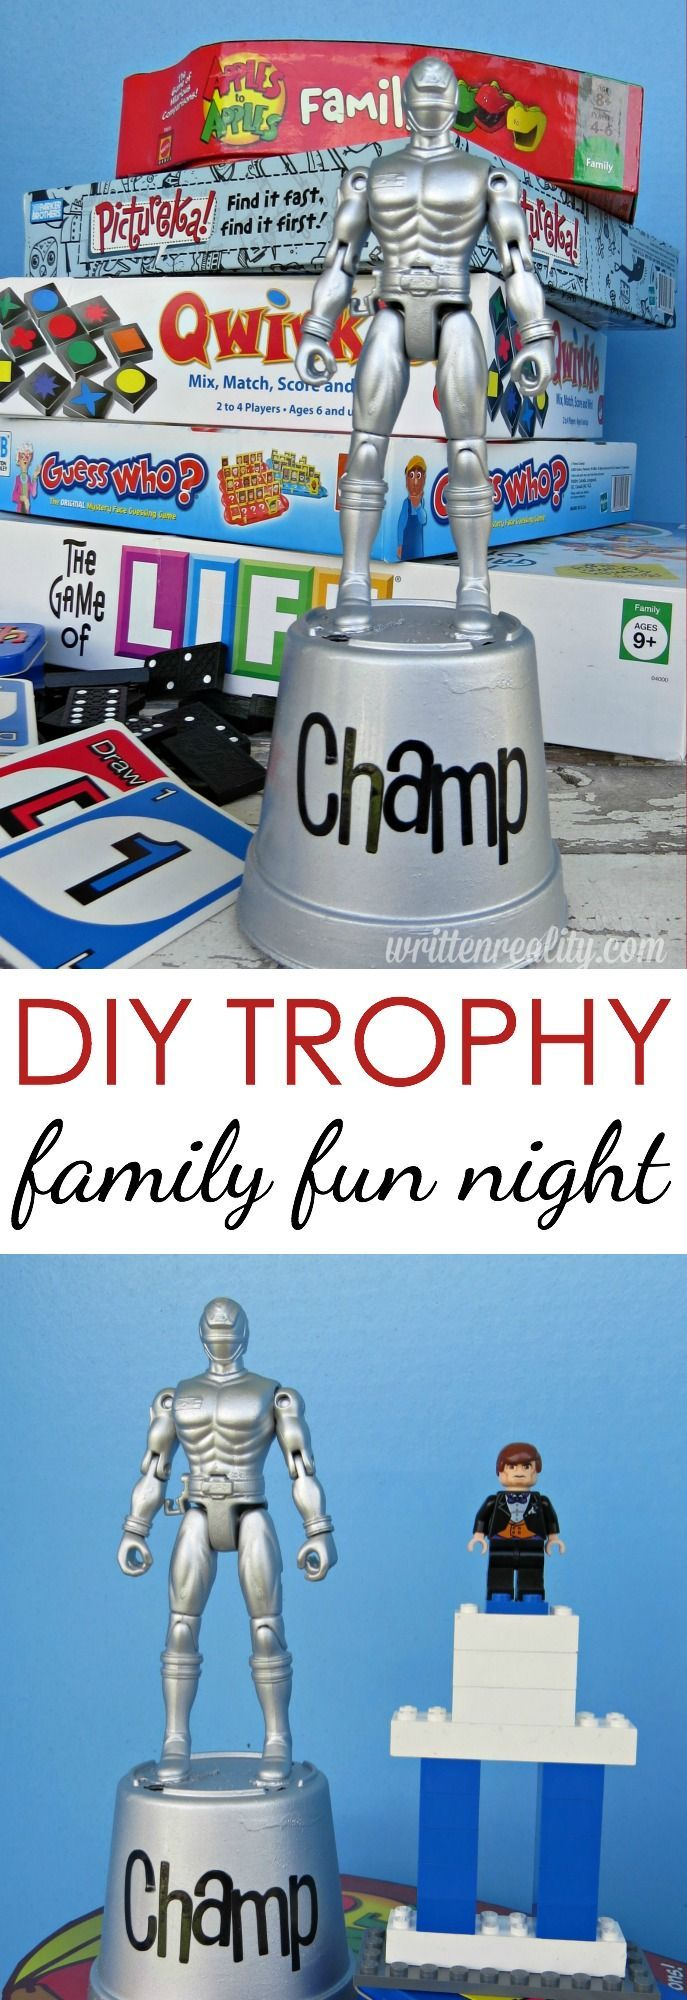 Looking for a fun way to celebrate family game night? Here's how to make your own homemade trophy for extra family fun. Who'll be the next Family Game Night champ?